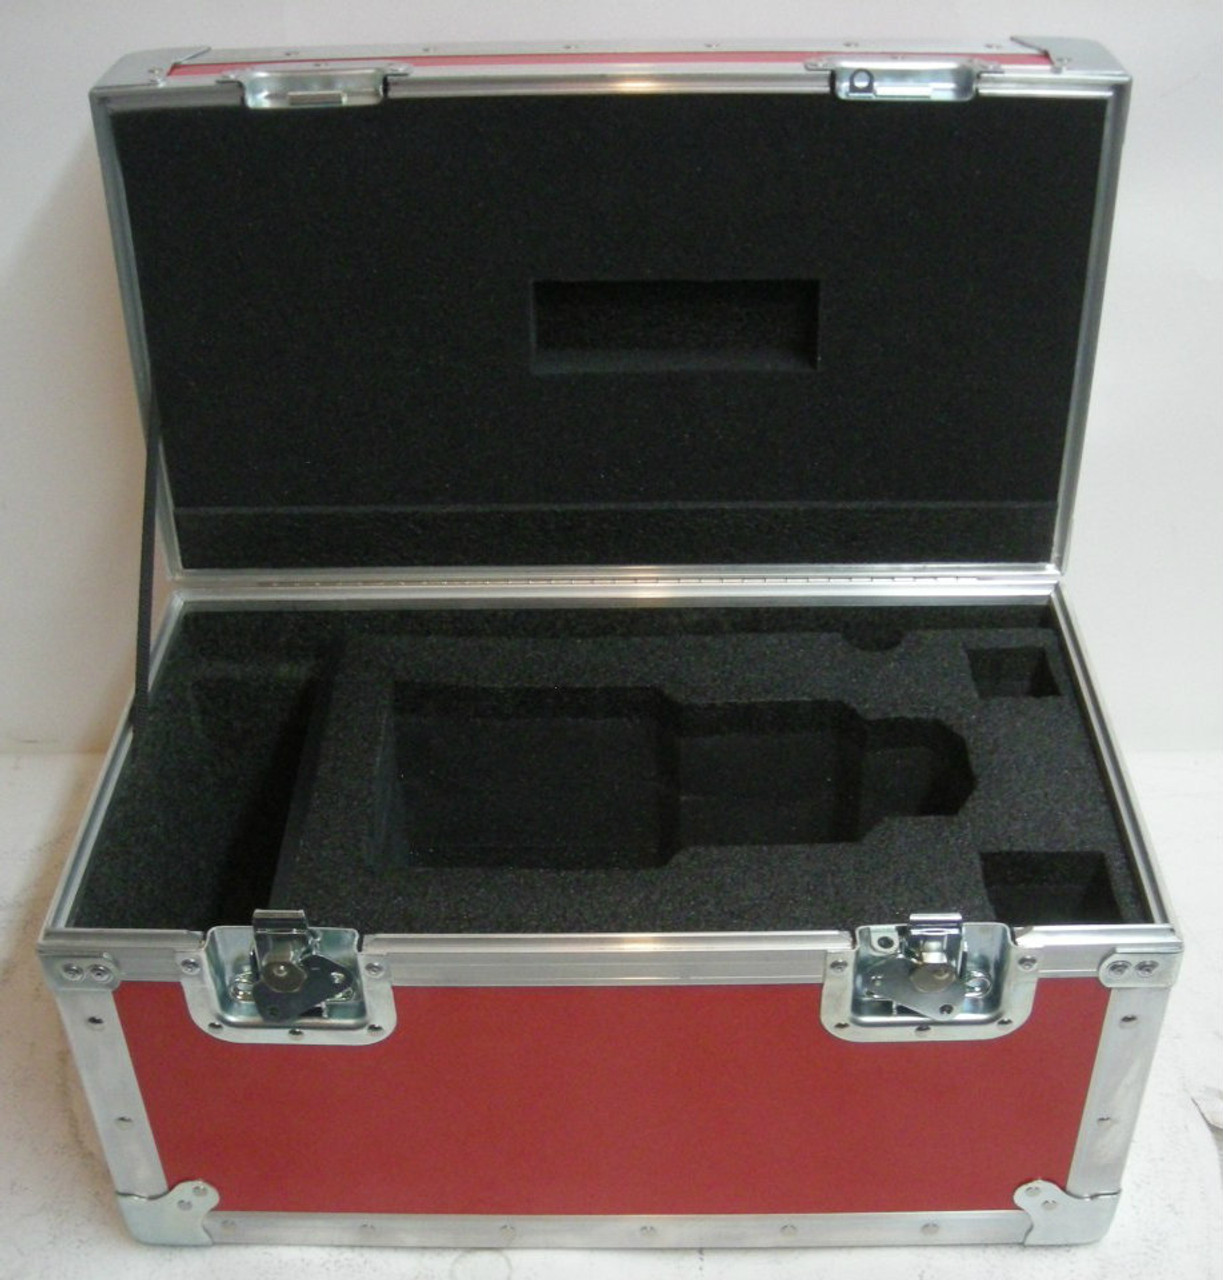 Red One 18-85MM Lens Custom ATA Shipping Case - Interior View